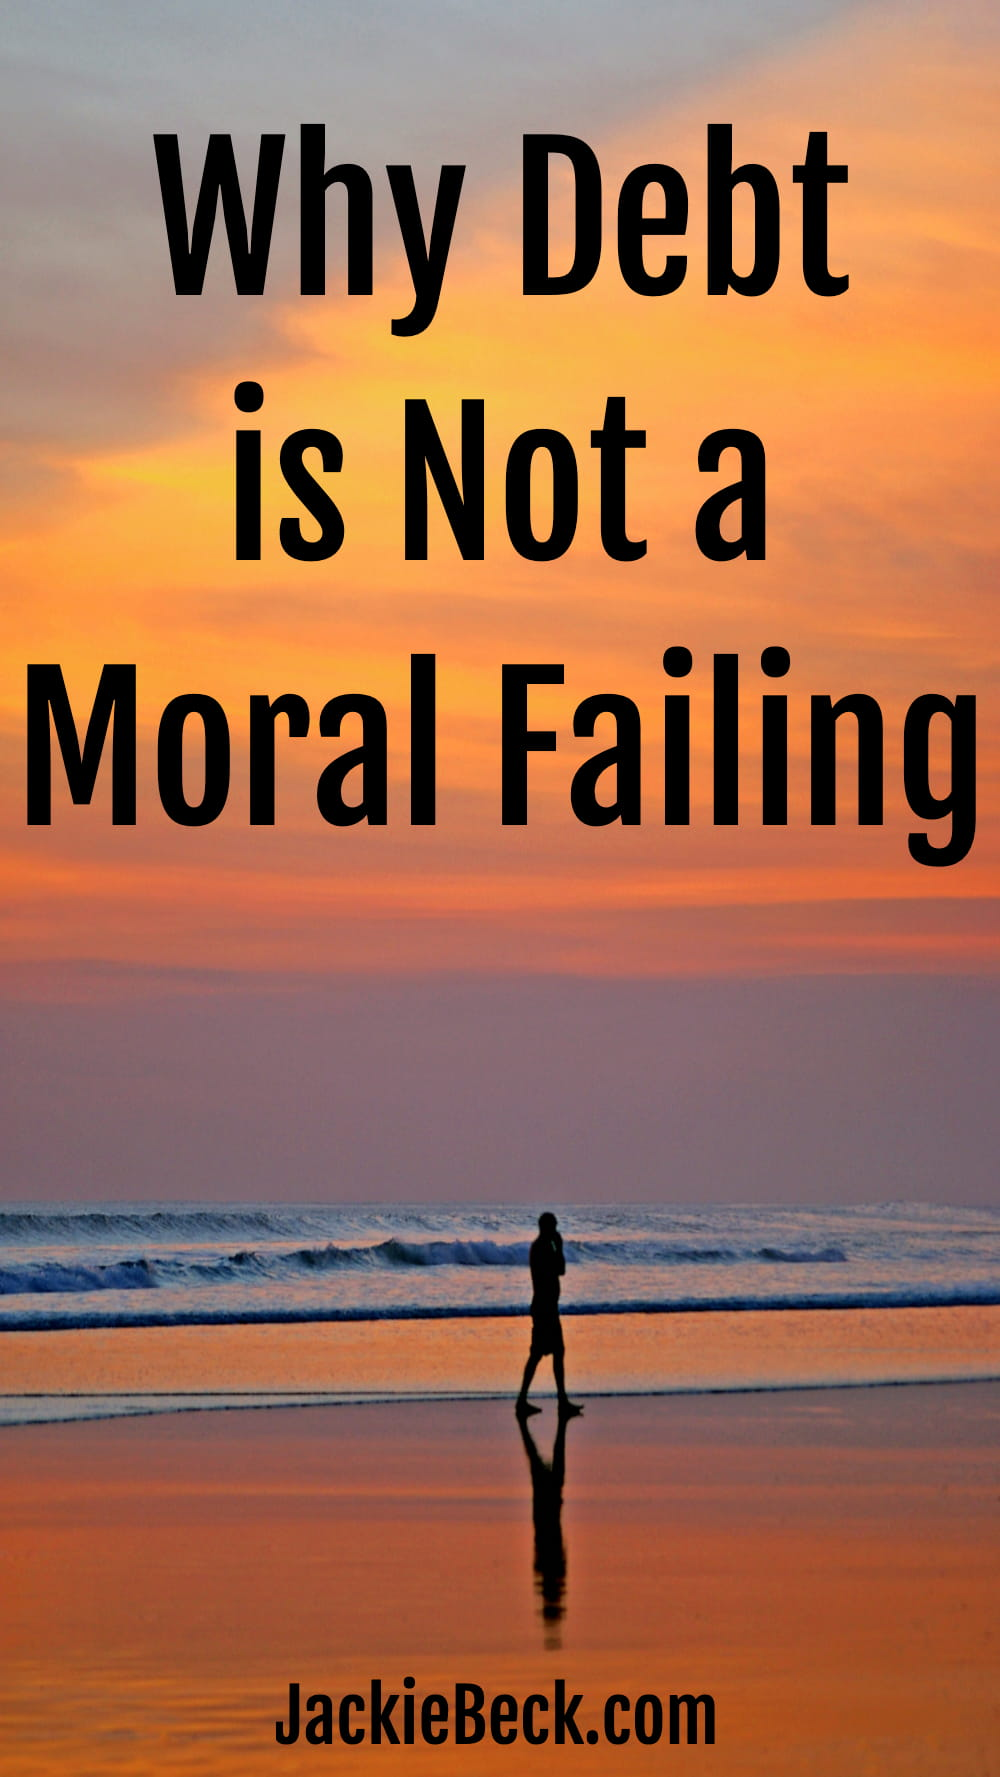 Why debt is not a moral failing